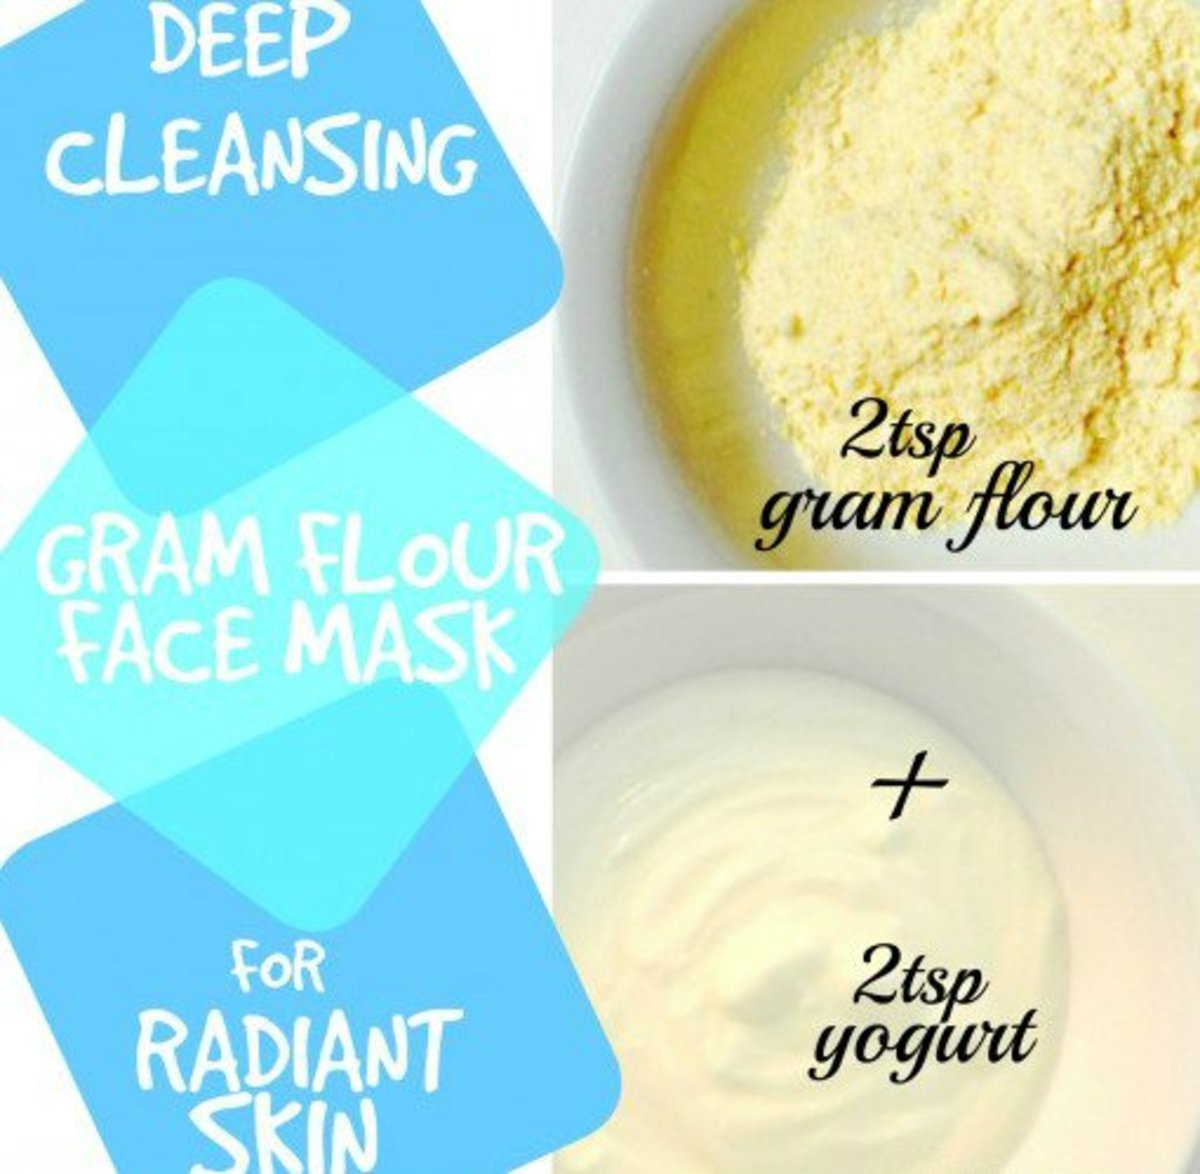 Top 3 Gram Flour Face Mask Recipes for Beautiful Skin